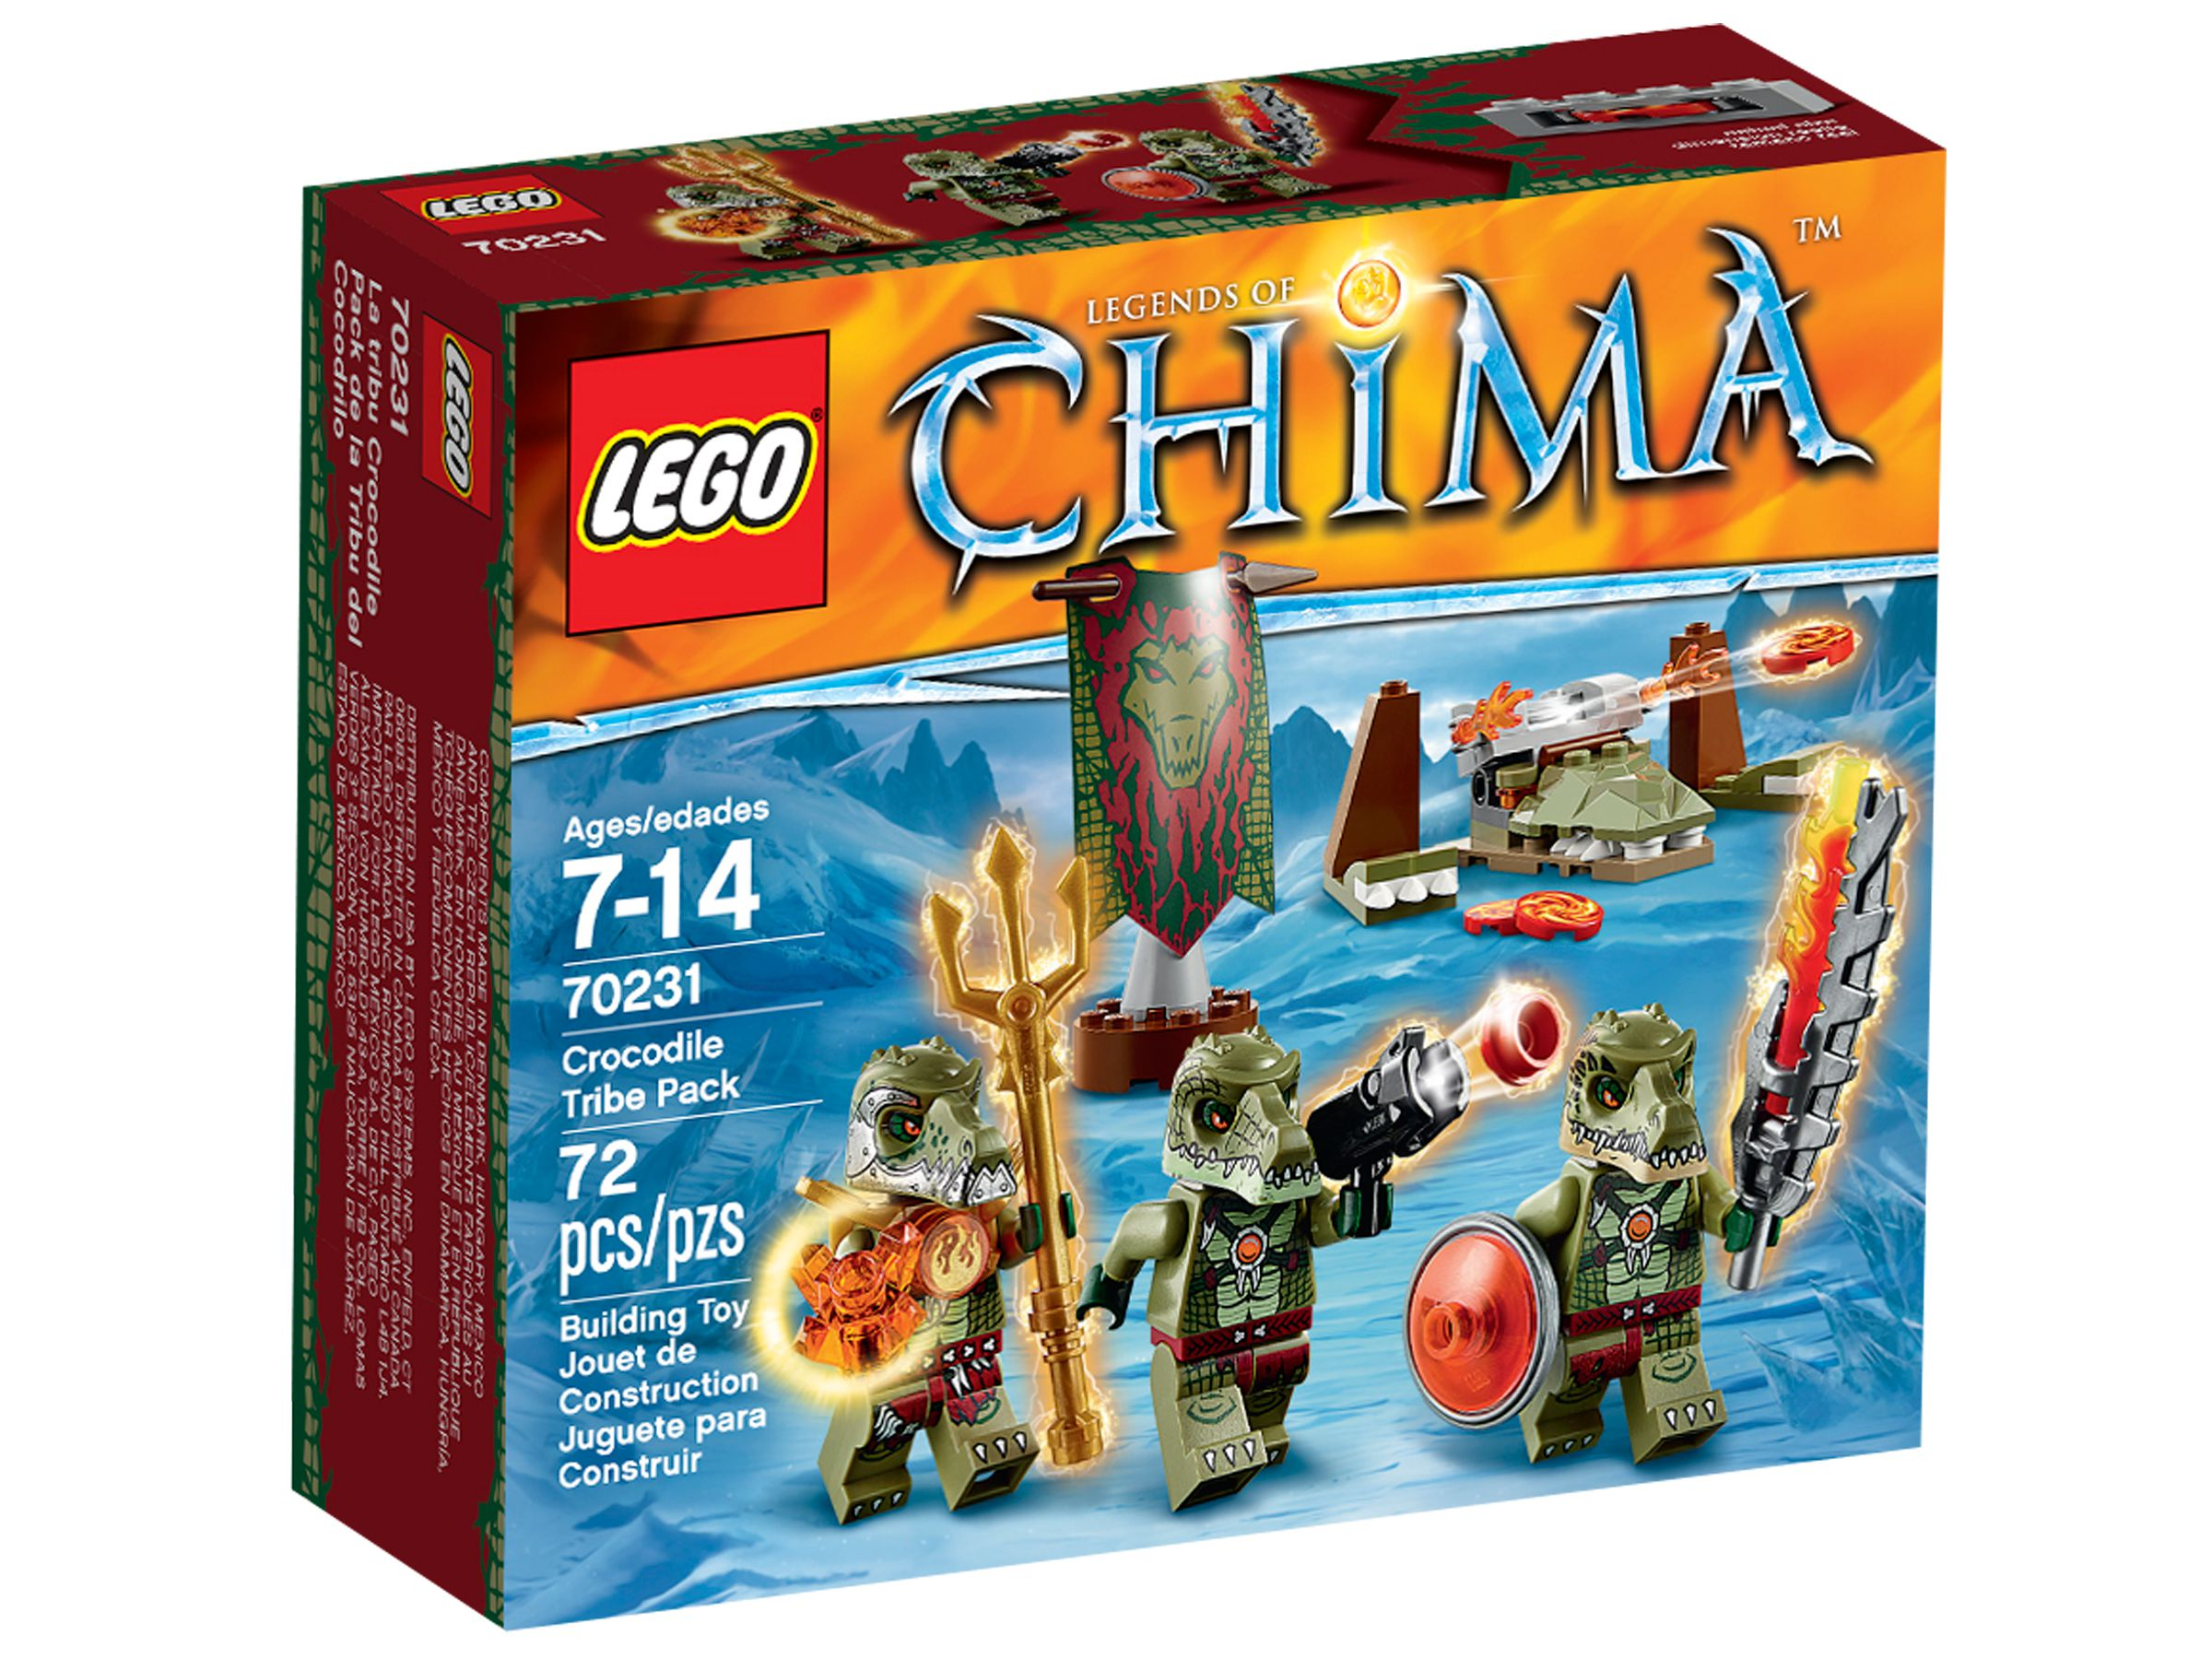 LEGO Legends Of Chima 70231 Krokodilstamm-Set LEGO_70231_alt1.jpg